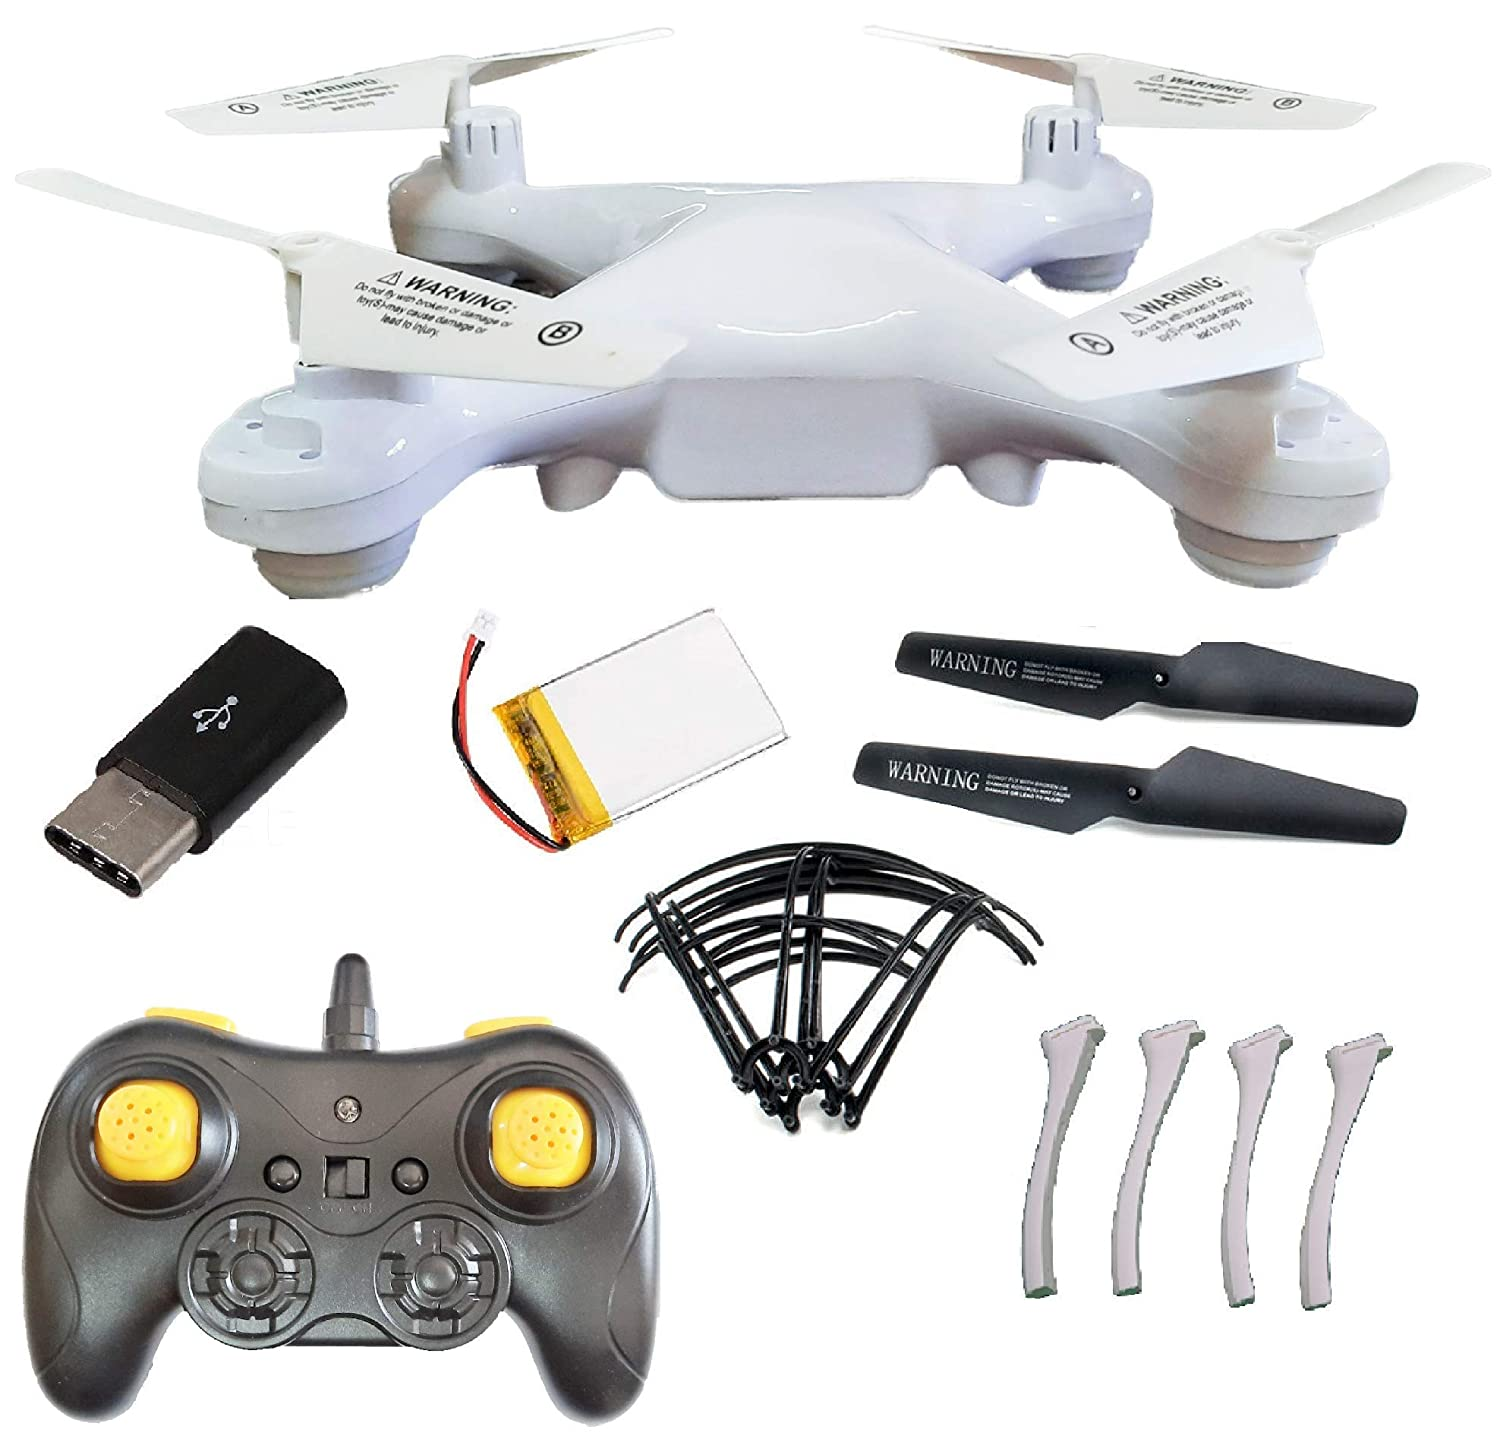 Amitasha 2.4GHz Altitude Hold RC Drone with 360° Flip Action and Headless Mode